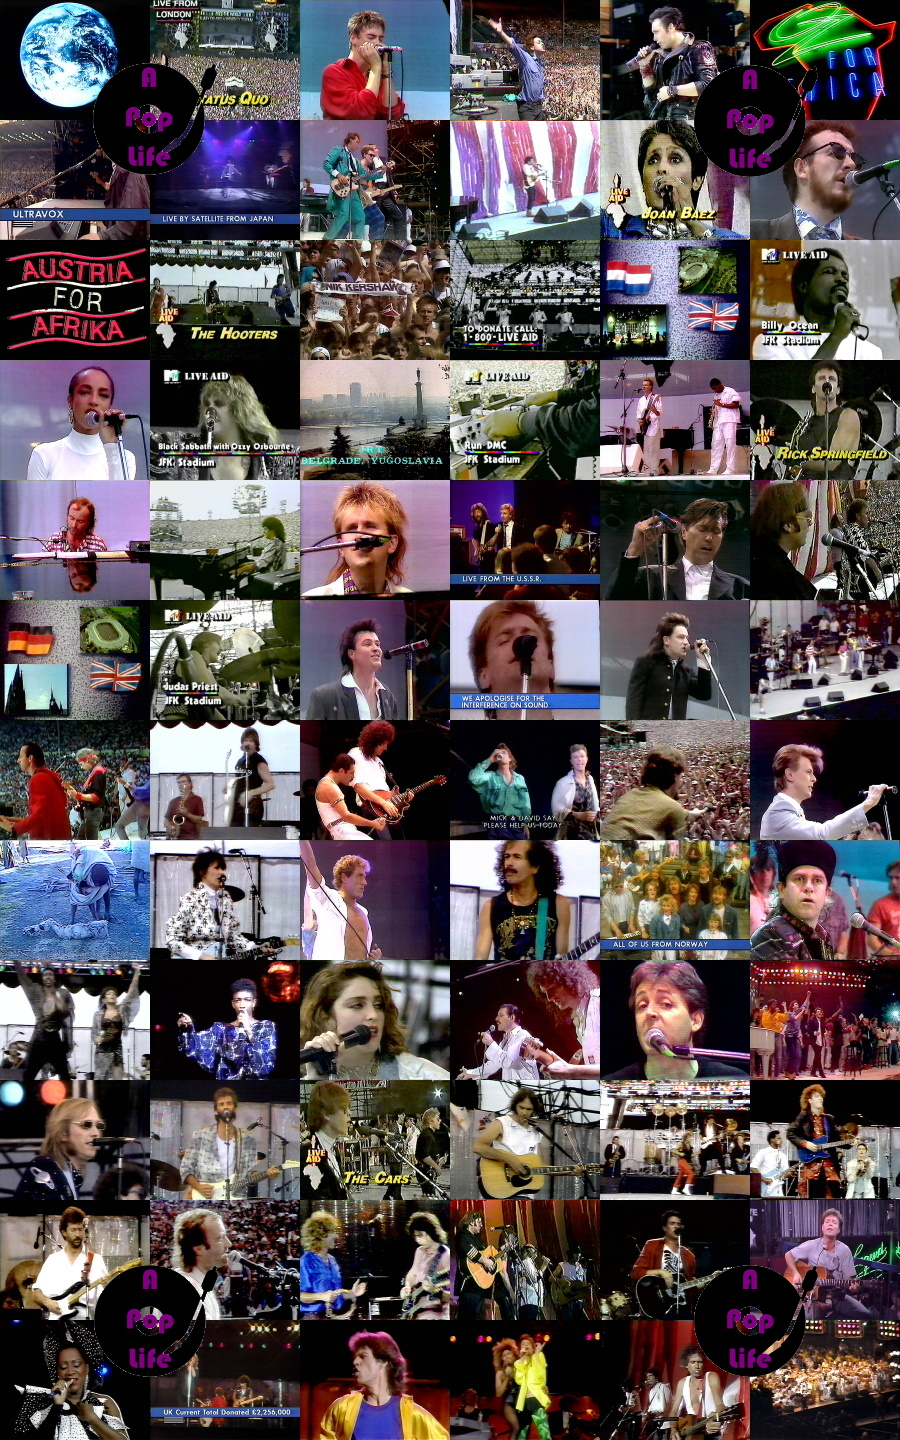 Live Aid Collage (apoplife.nl)